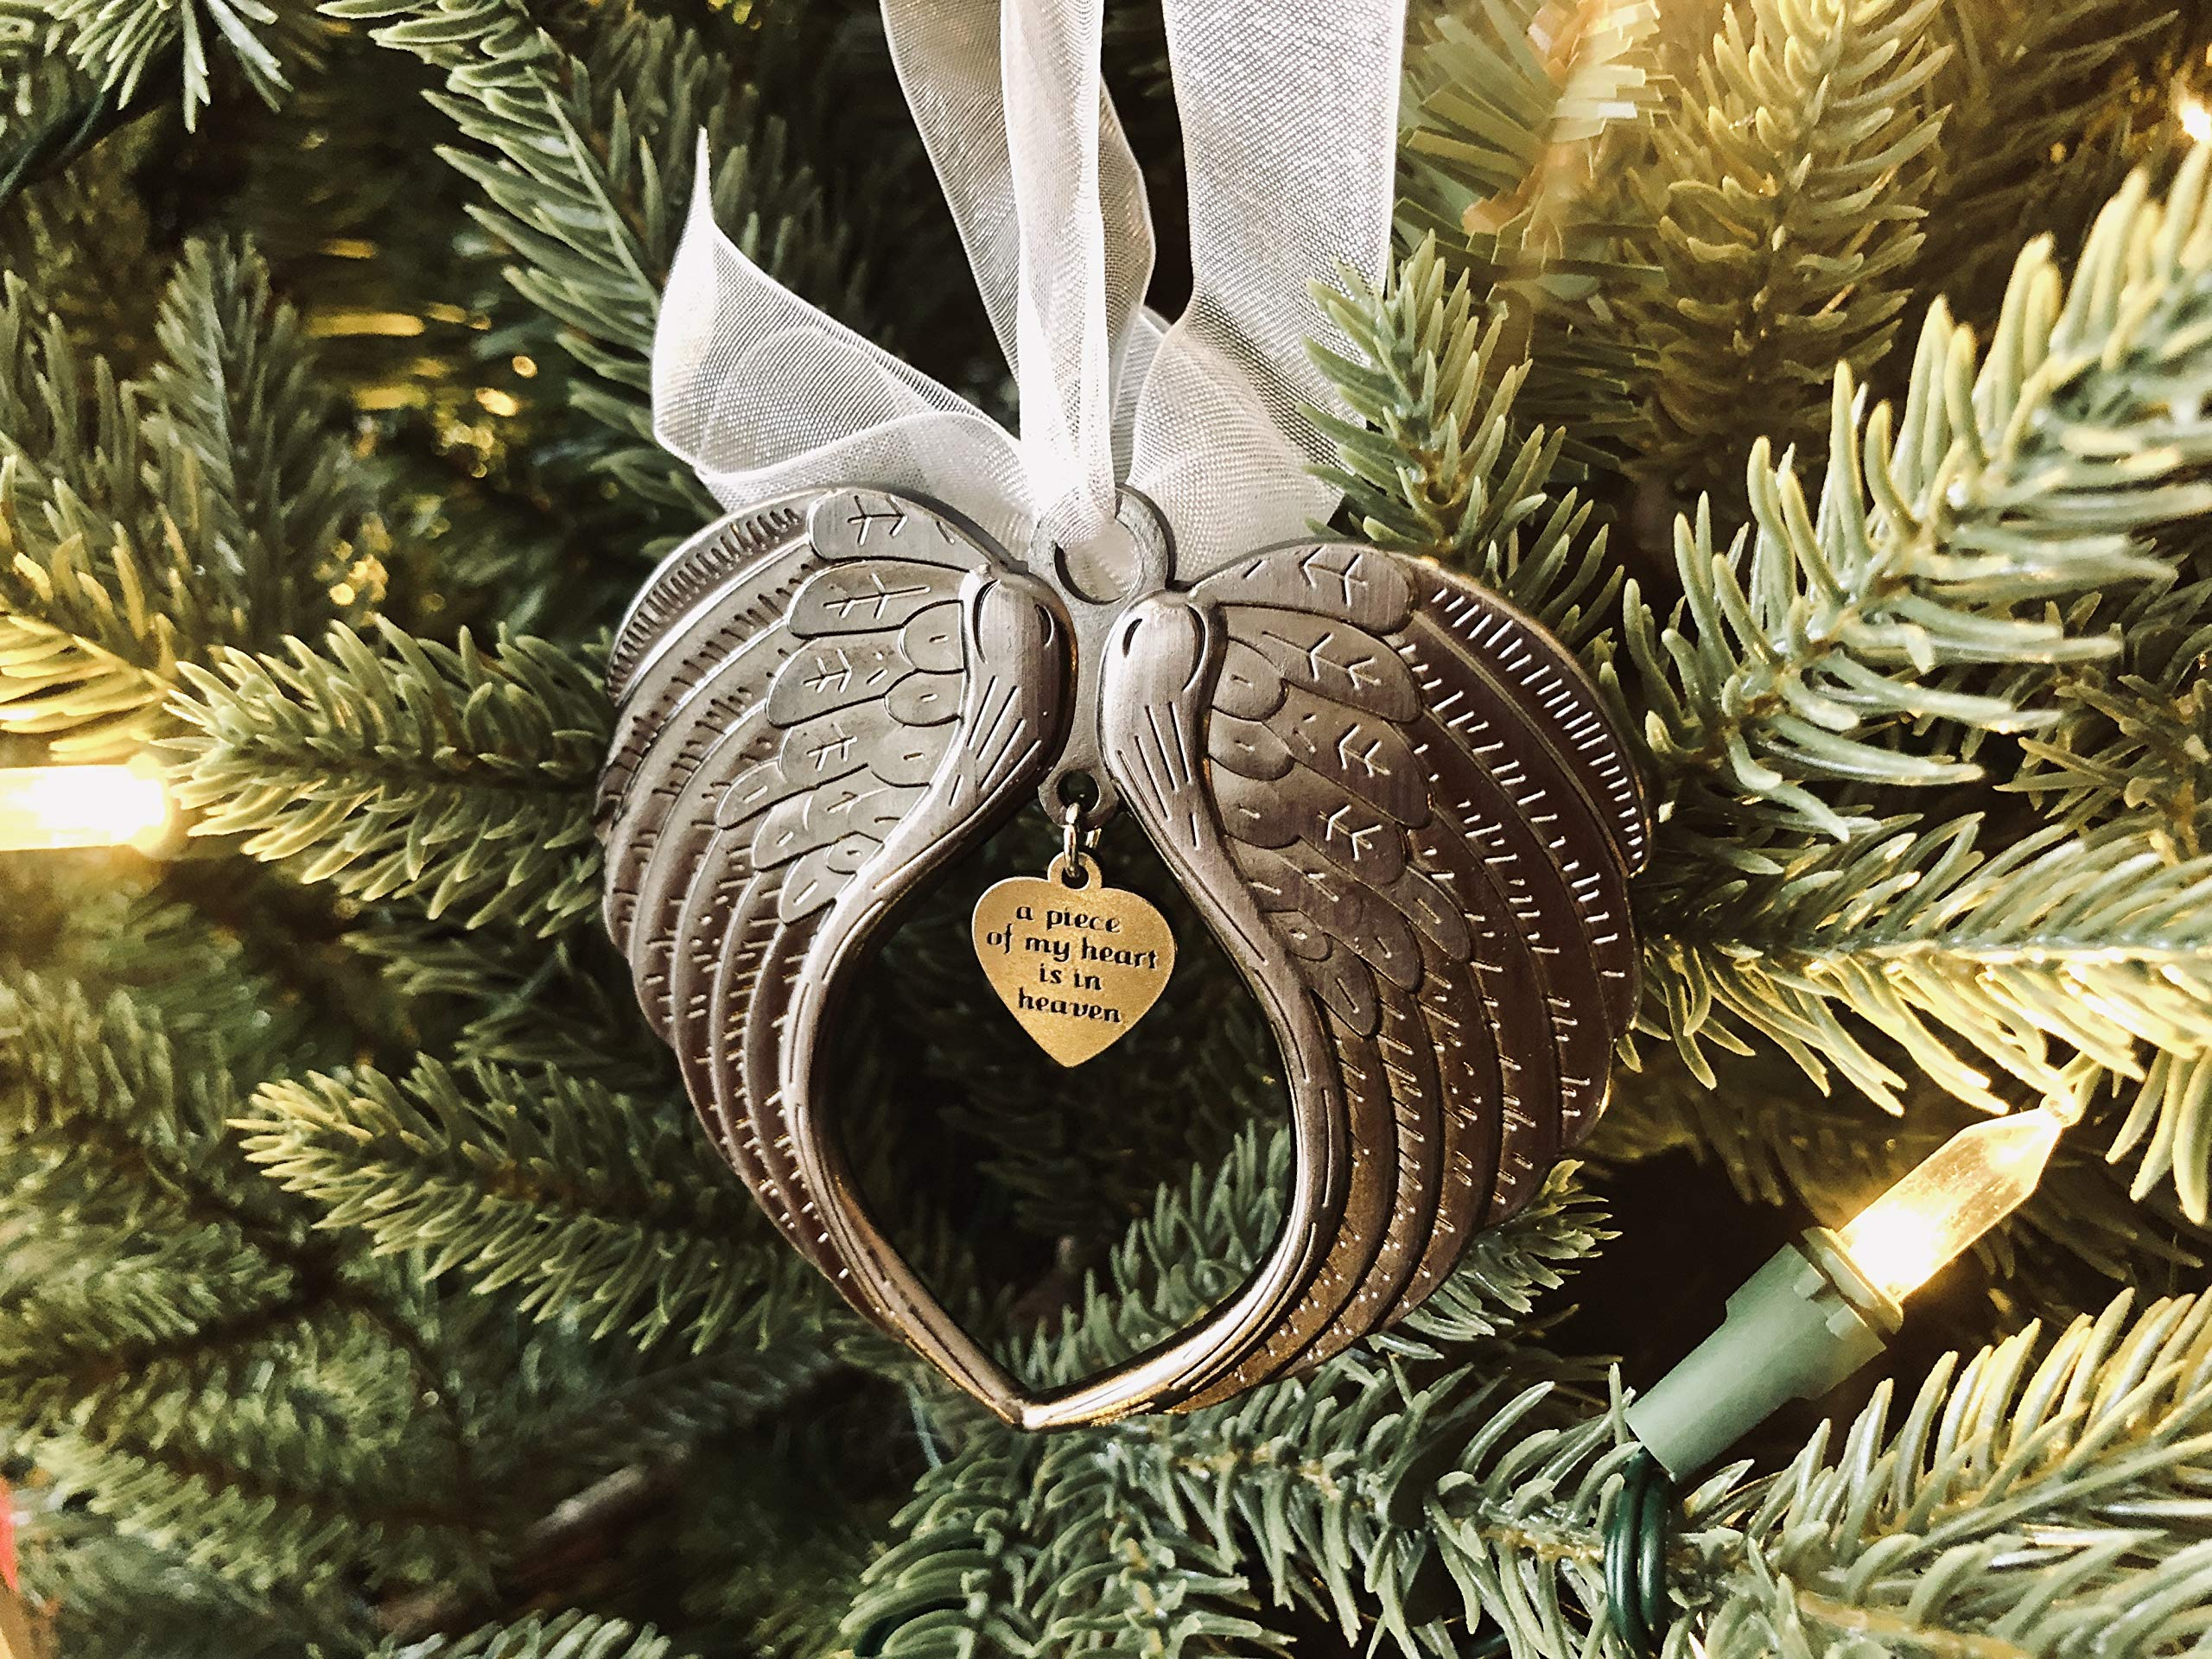 Christmas Ornaments Angel Wings - A Piece of My Heart is in Heaven Ornament for Christmas Tree